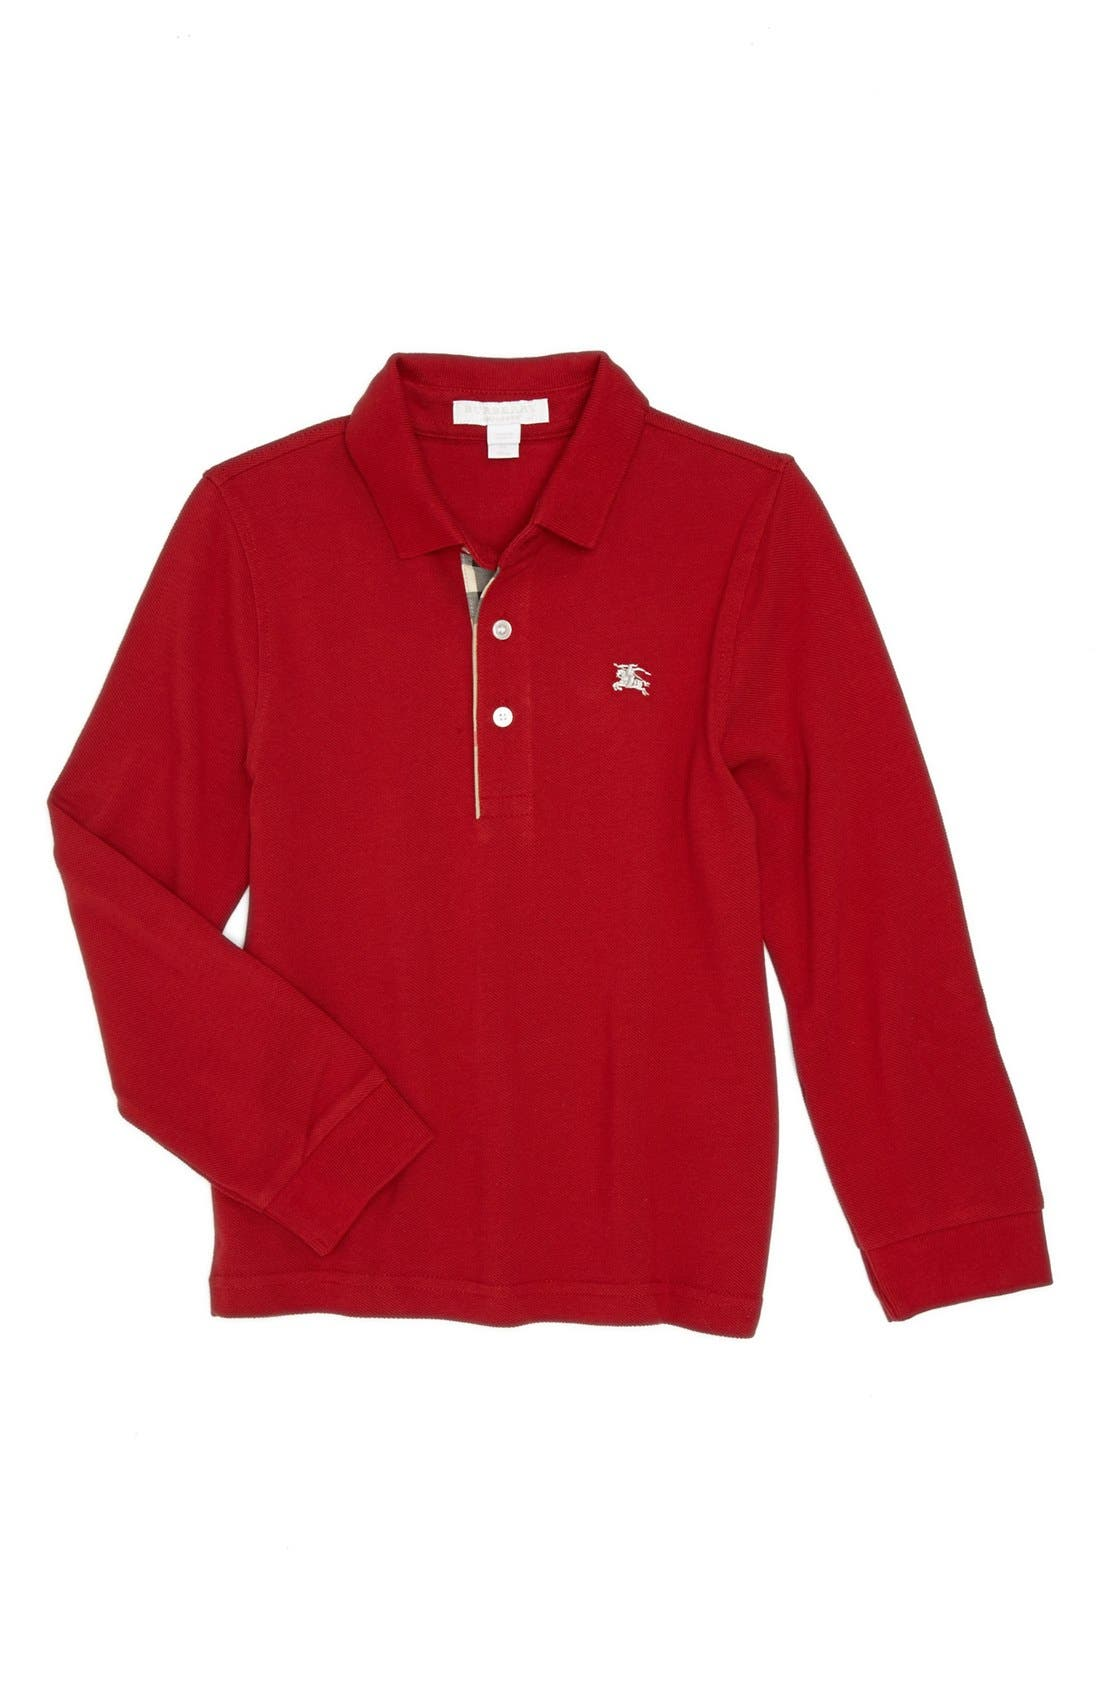 Alternate Image 1 Selected - Burberry Long Sleeve Polo (Little Boys & Big Boys)